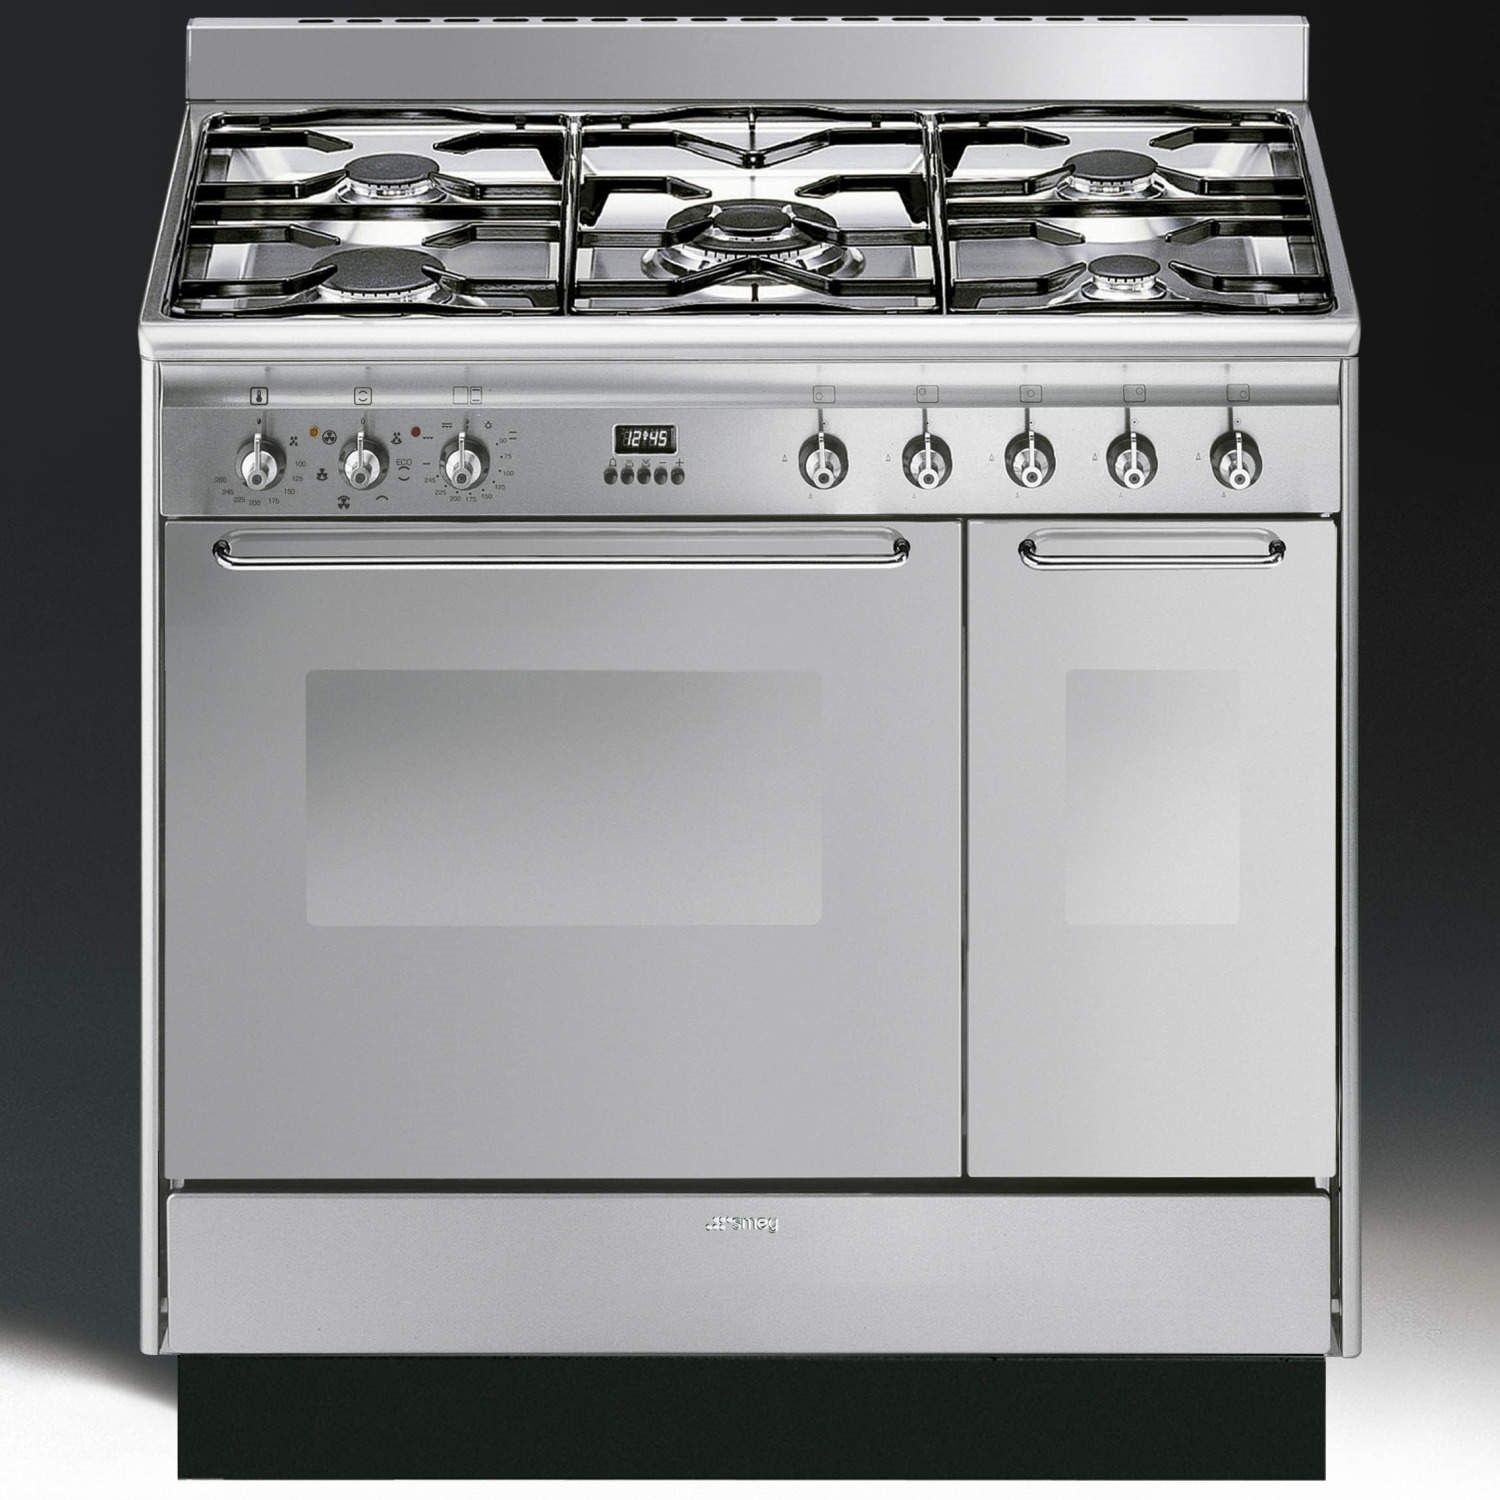 Cucina Kitchen Appliances Grade A1 As New But Box Opened Smeg Cc92mx9 Cucina Double Cavity 90cm Dual Fuel Range Cooker Stainless Steel